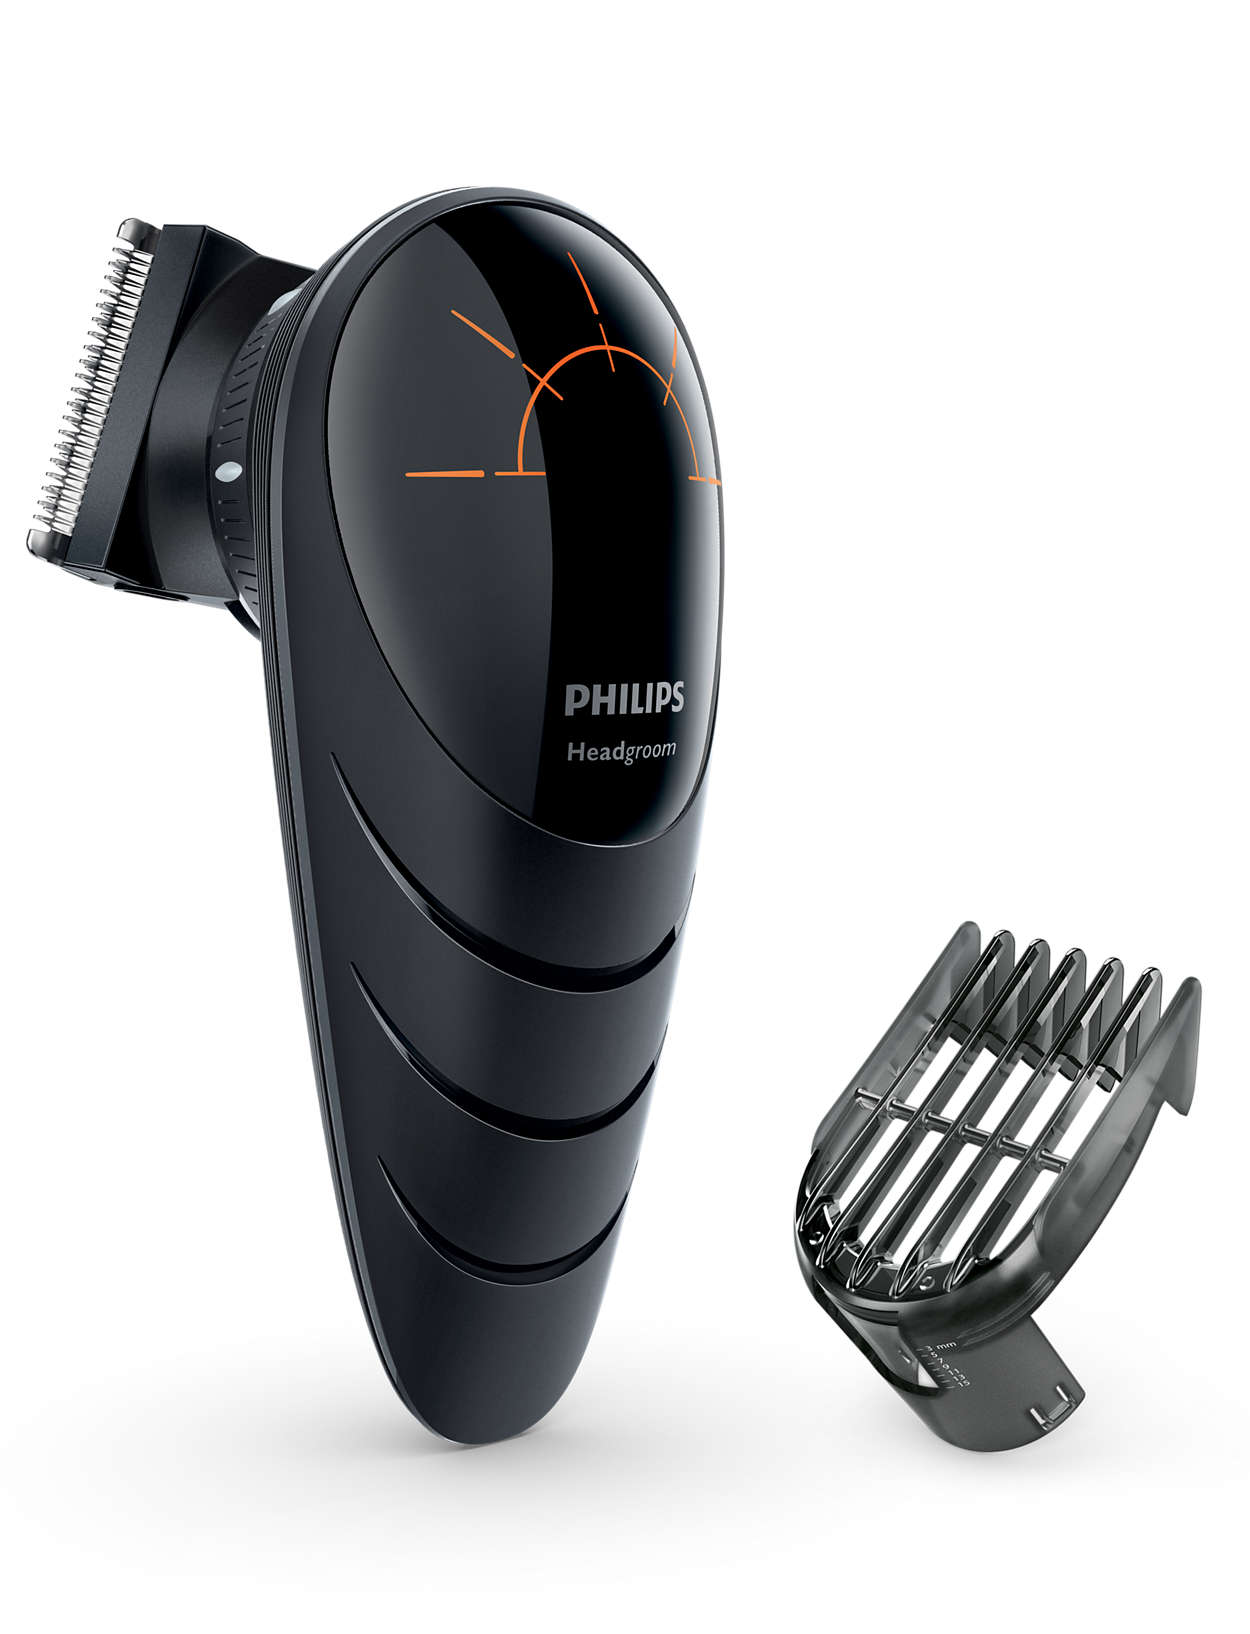 Do it yourself hair clipper qc556015 philips cut your own hair even in hard to reach areas solutioingenieria Gallery